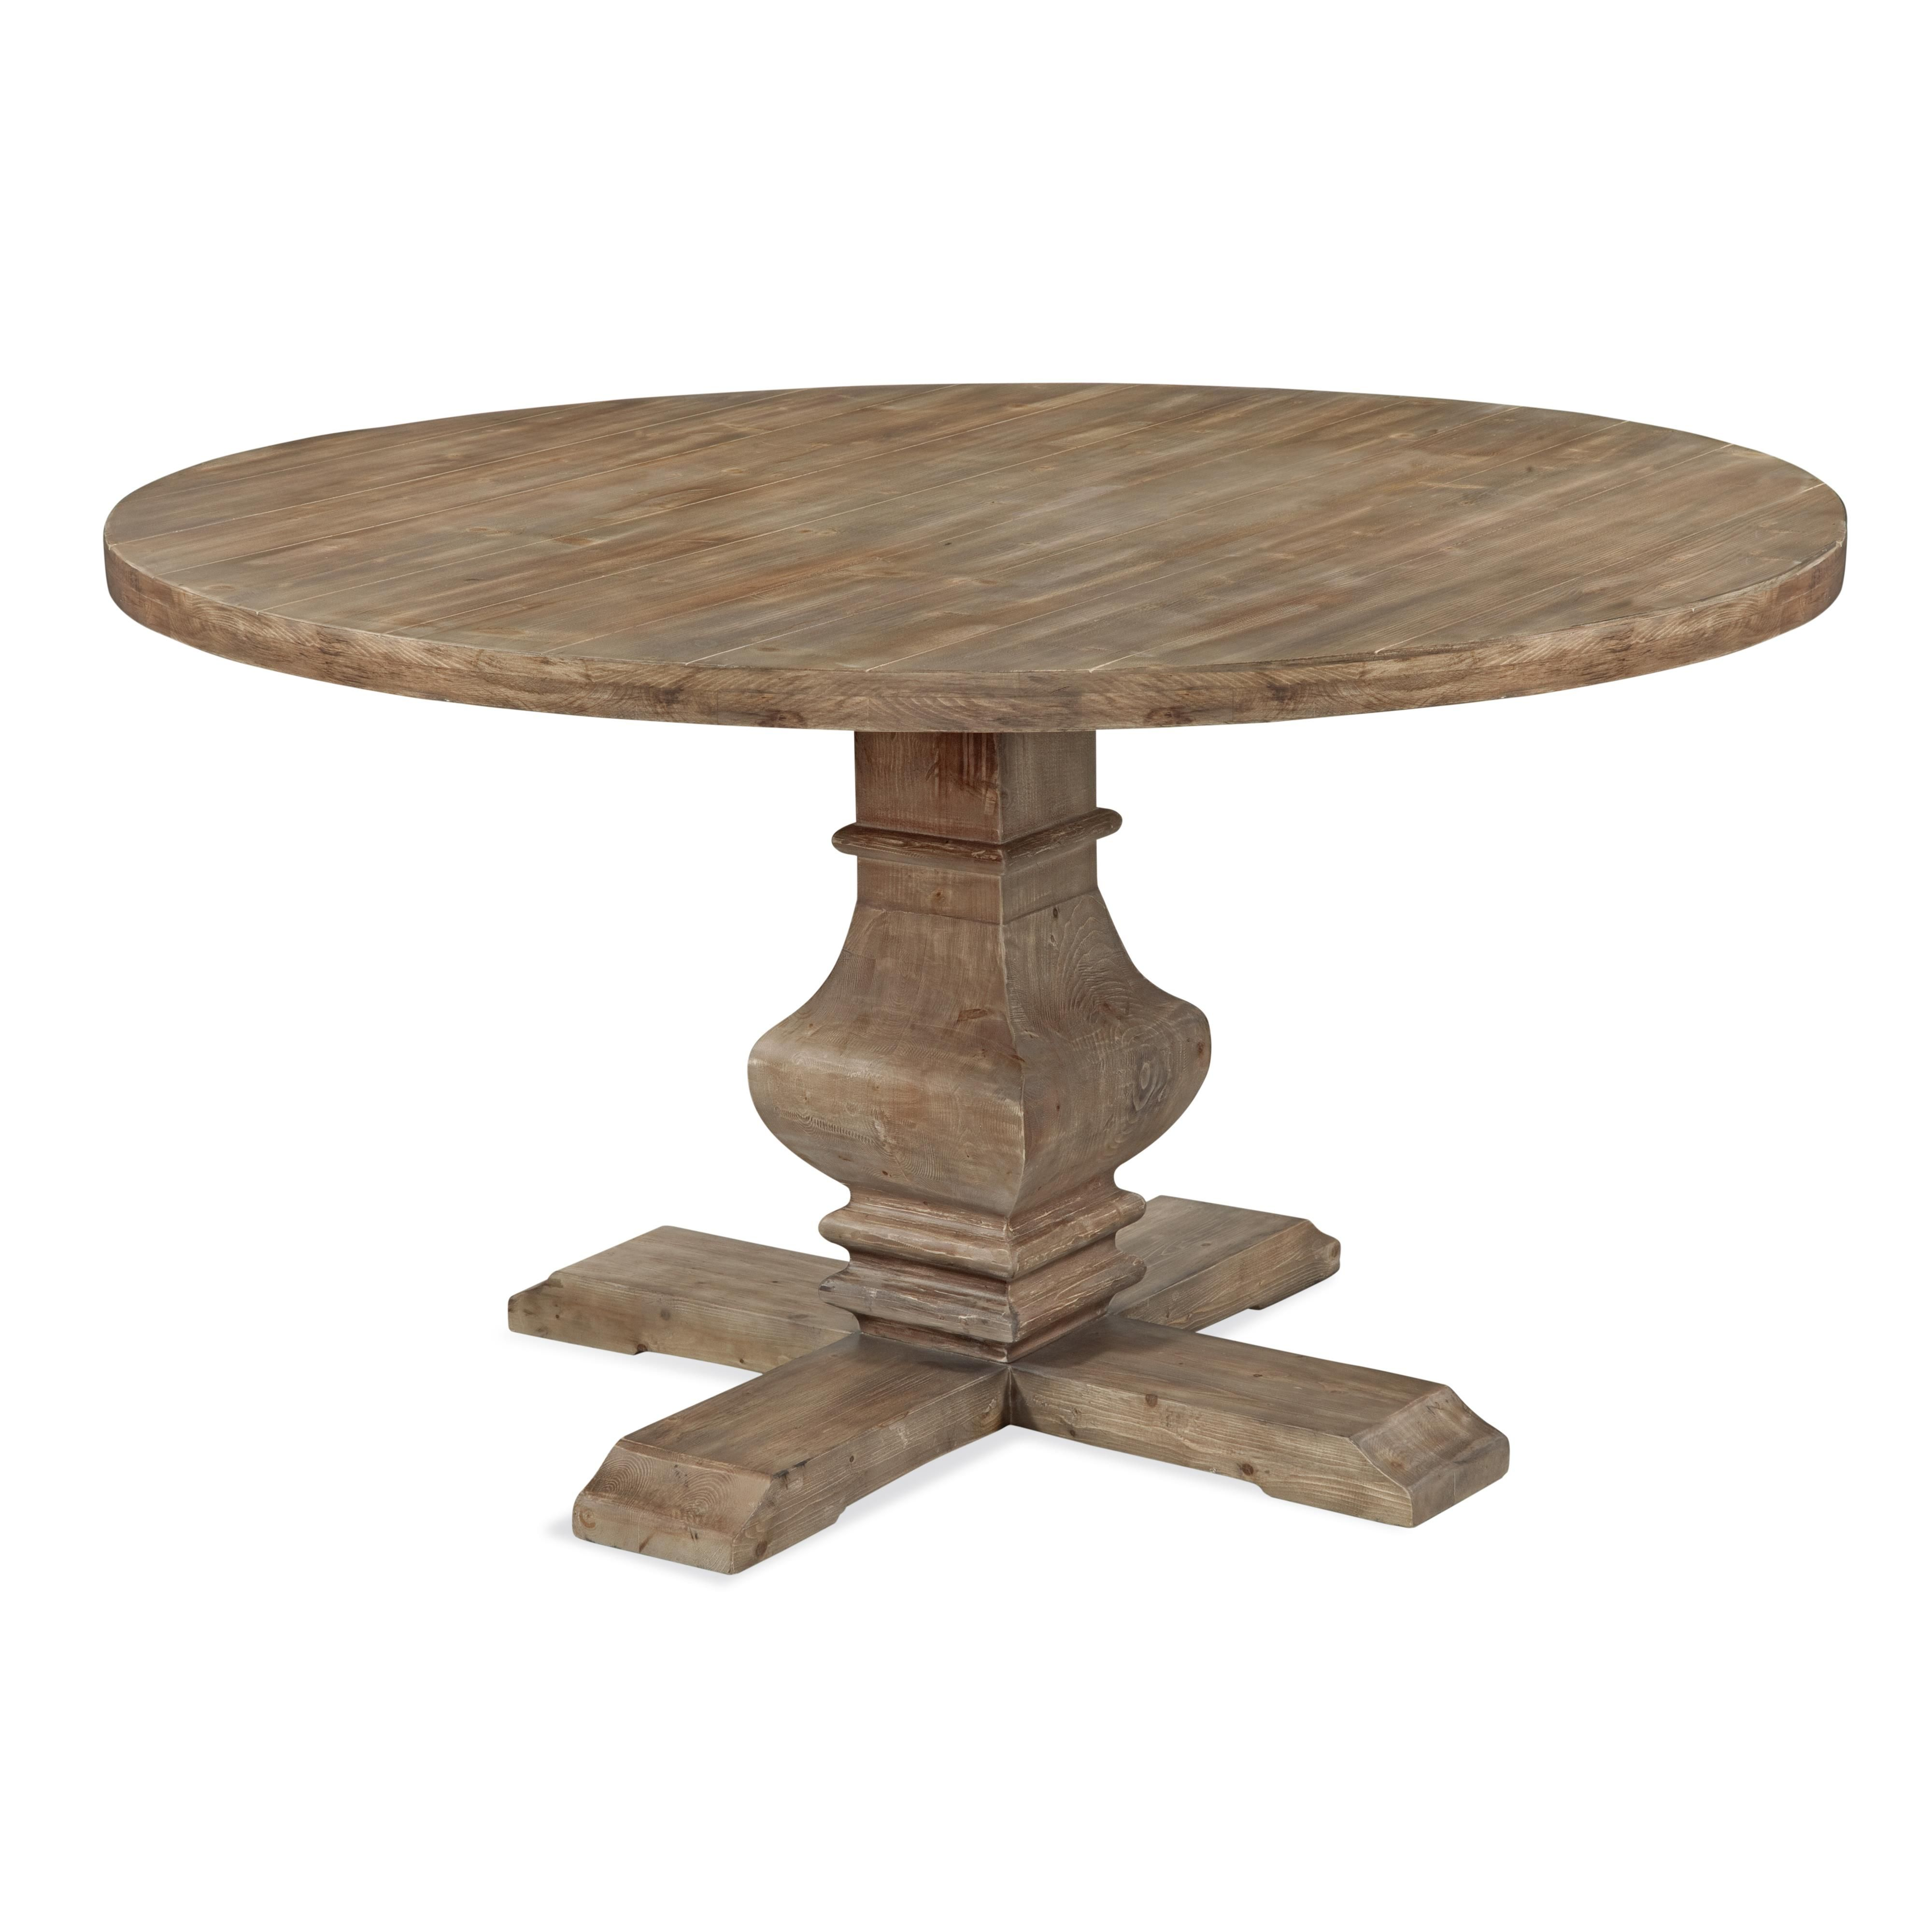 Belgian luxe kinzie round dining table by bassett mirror at hudsonus